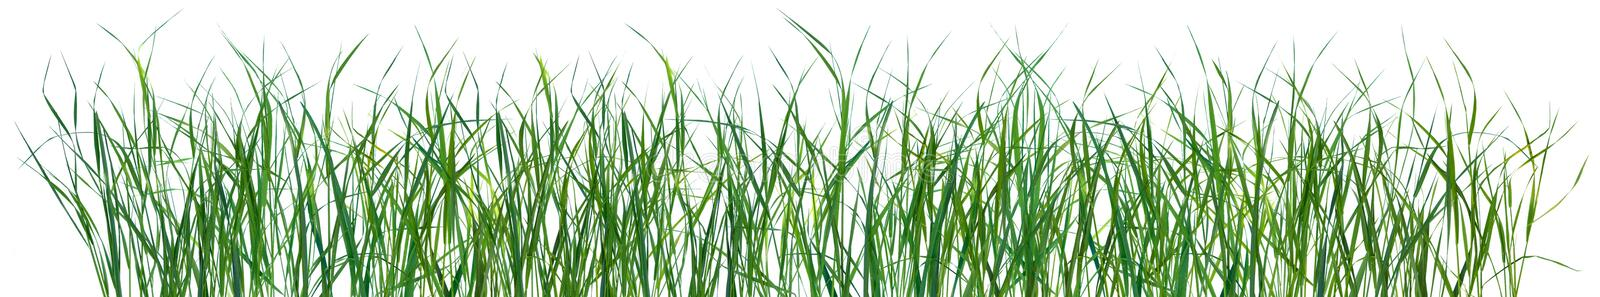 Grass pattern texture isolated royalty free stock photography